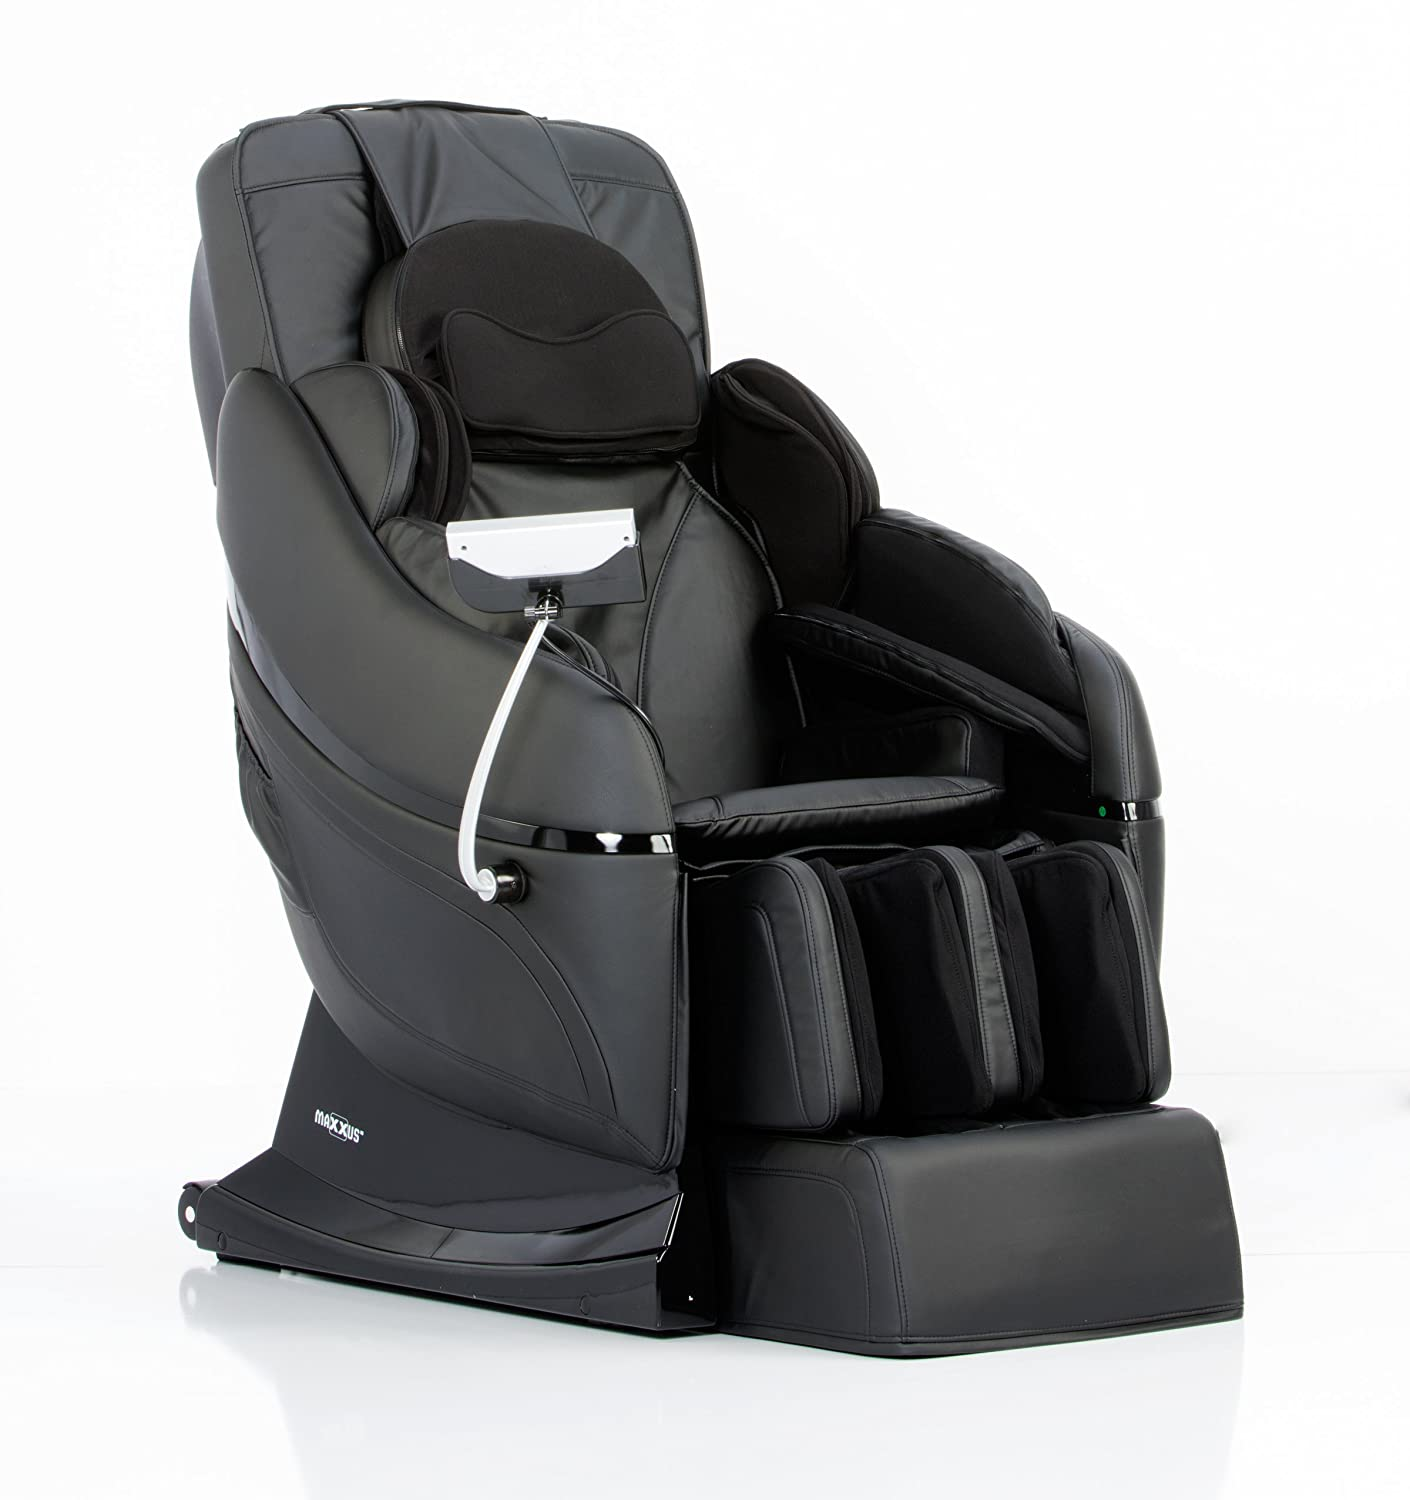 MAXXUS® Massagesessel MX 15.0 mit intelligenter Massage. Schwarz.